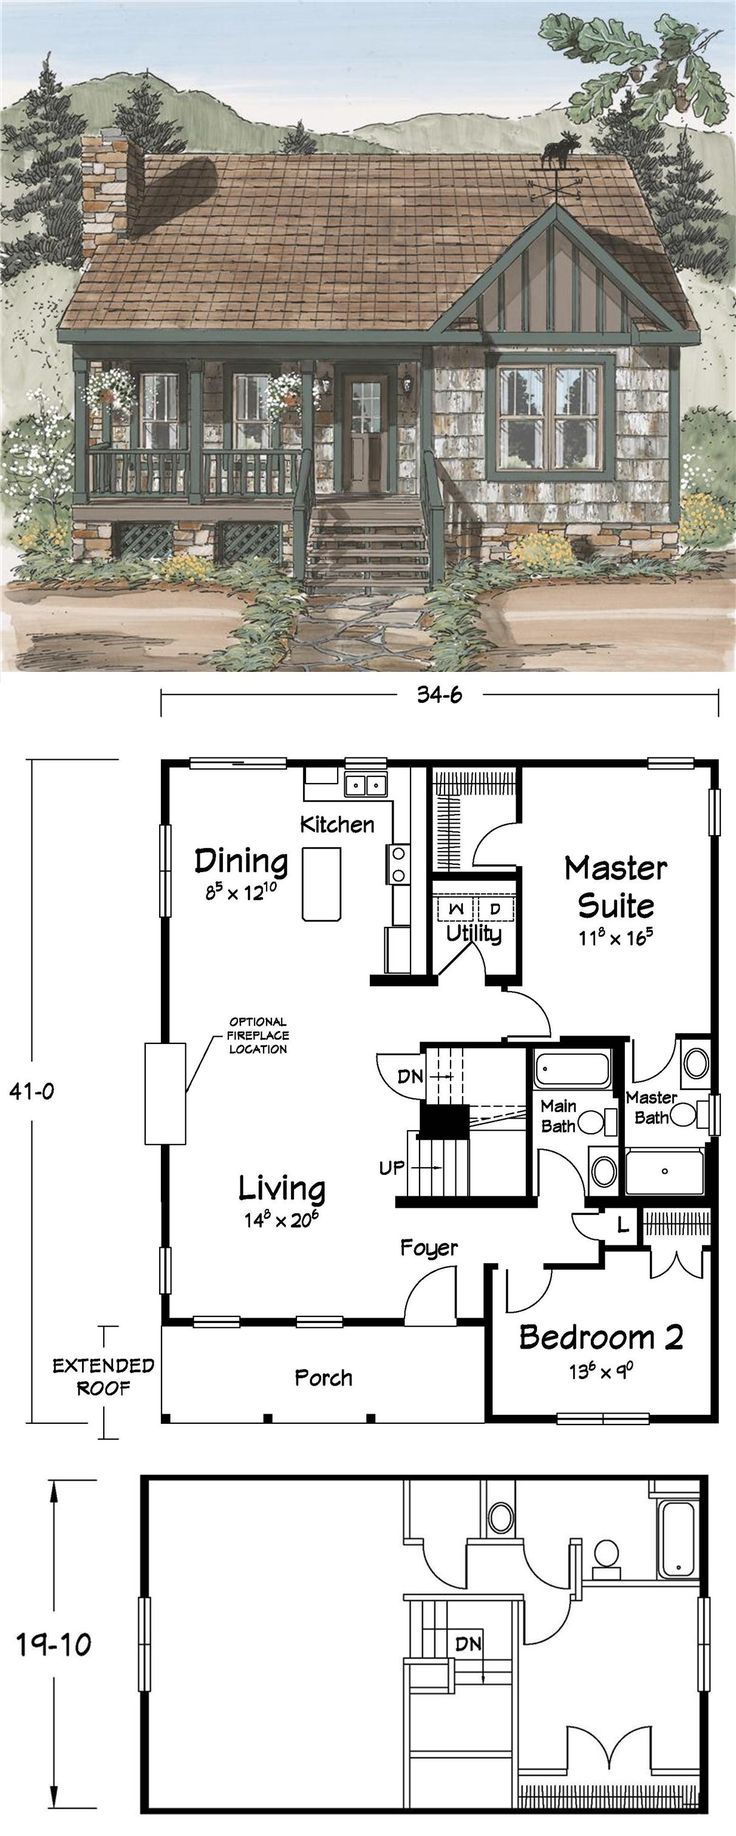 Cute floor plans tiny homes pinterest cabin small for Small cabin floor plans